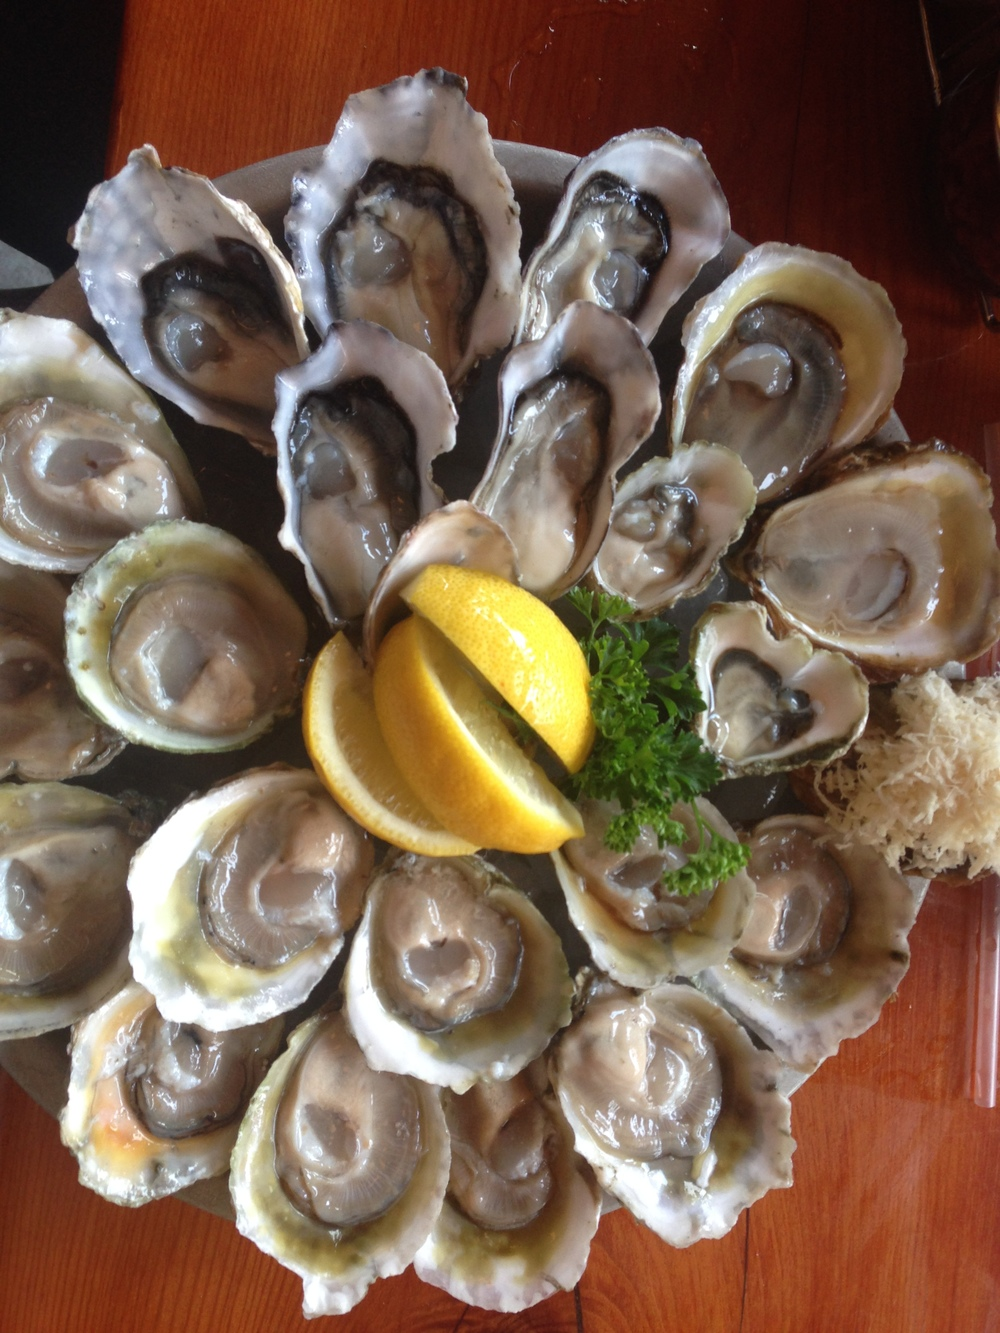 A delicious looking plate of freshly shucked New Zealand Oysters at Oyster Express in Vancouver.  Tio Points on the bottom, Kaipara Oysters on the top.